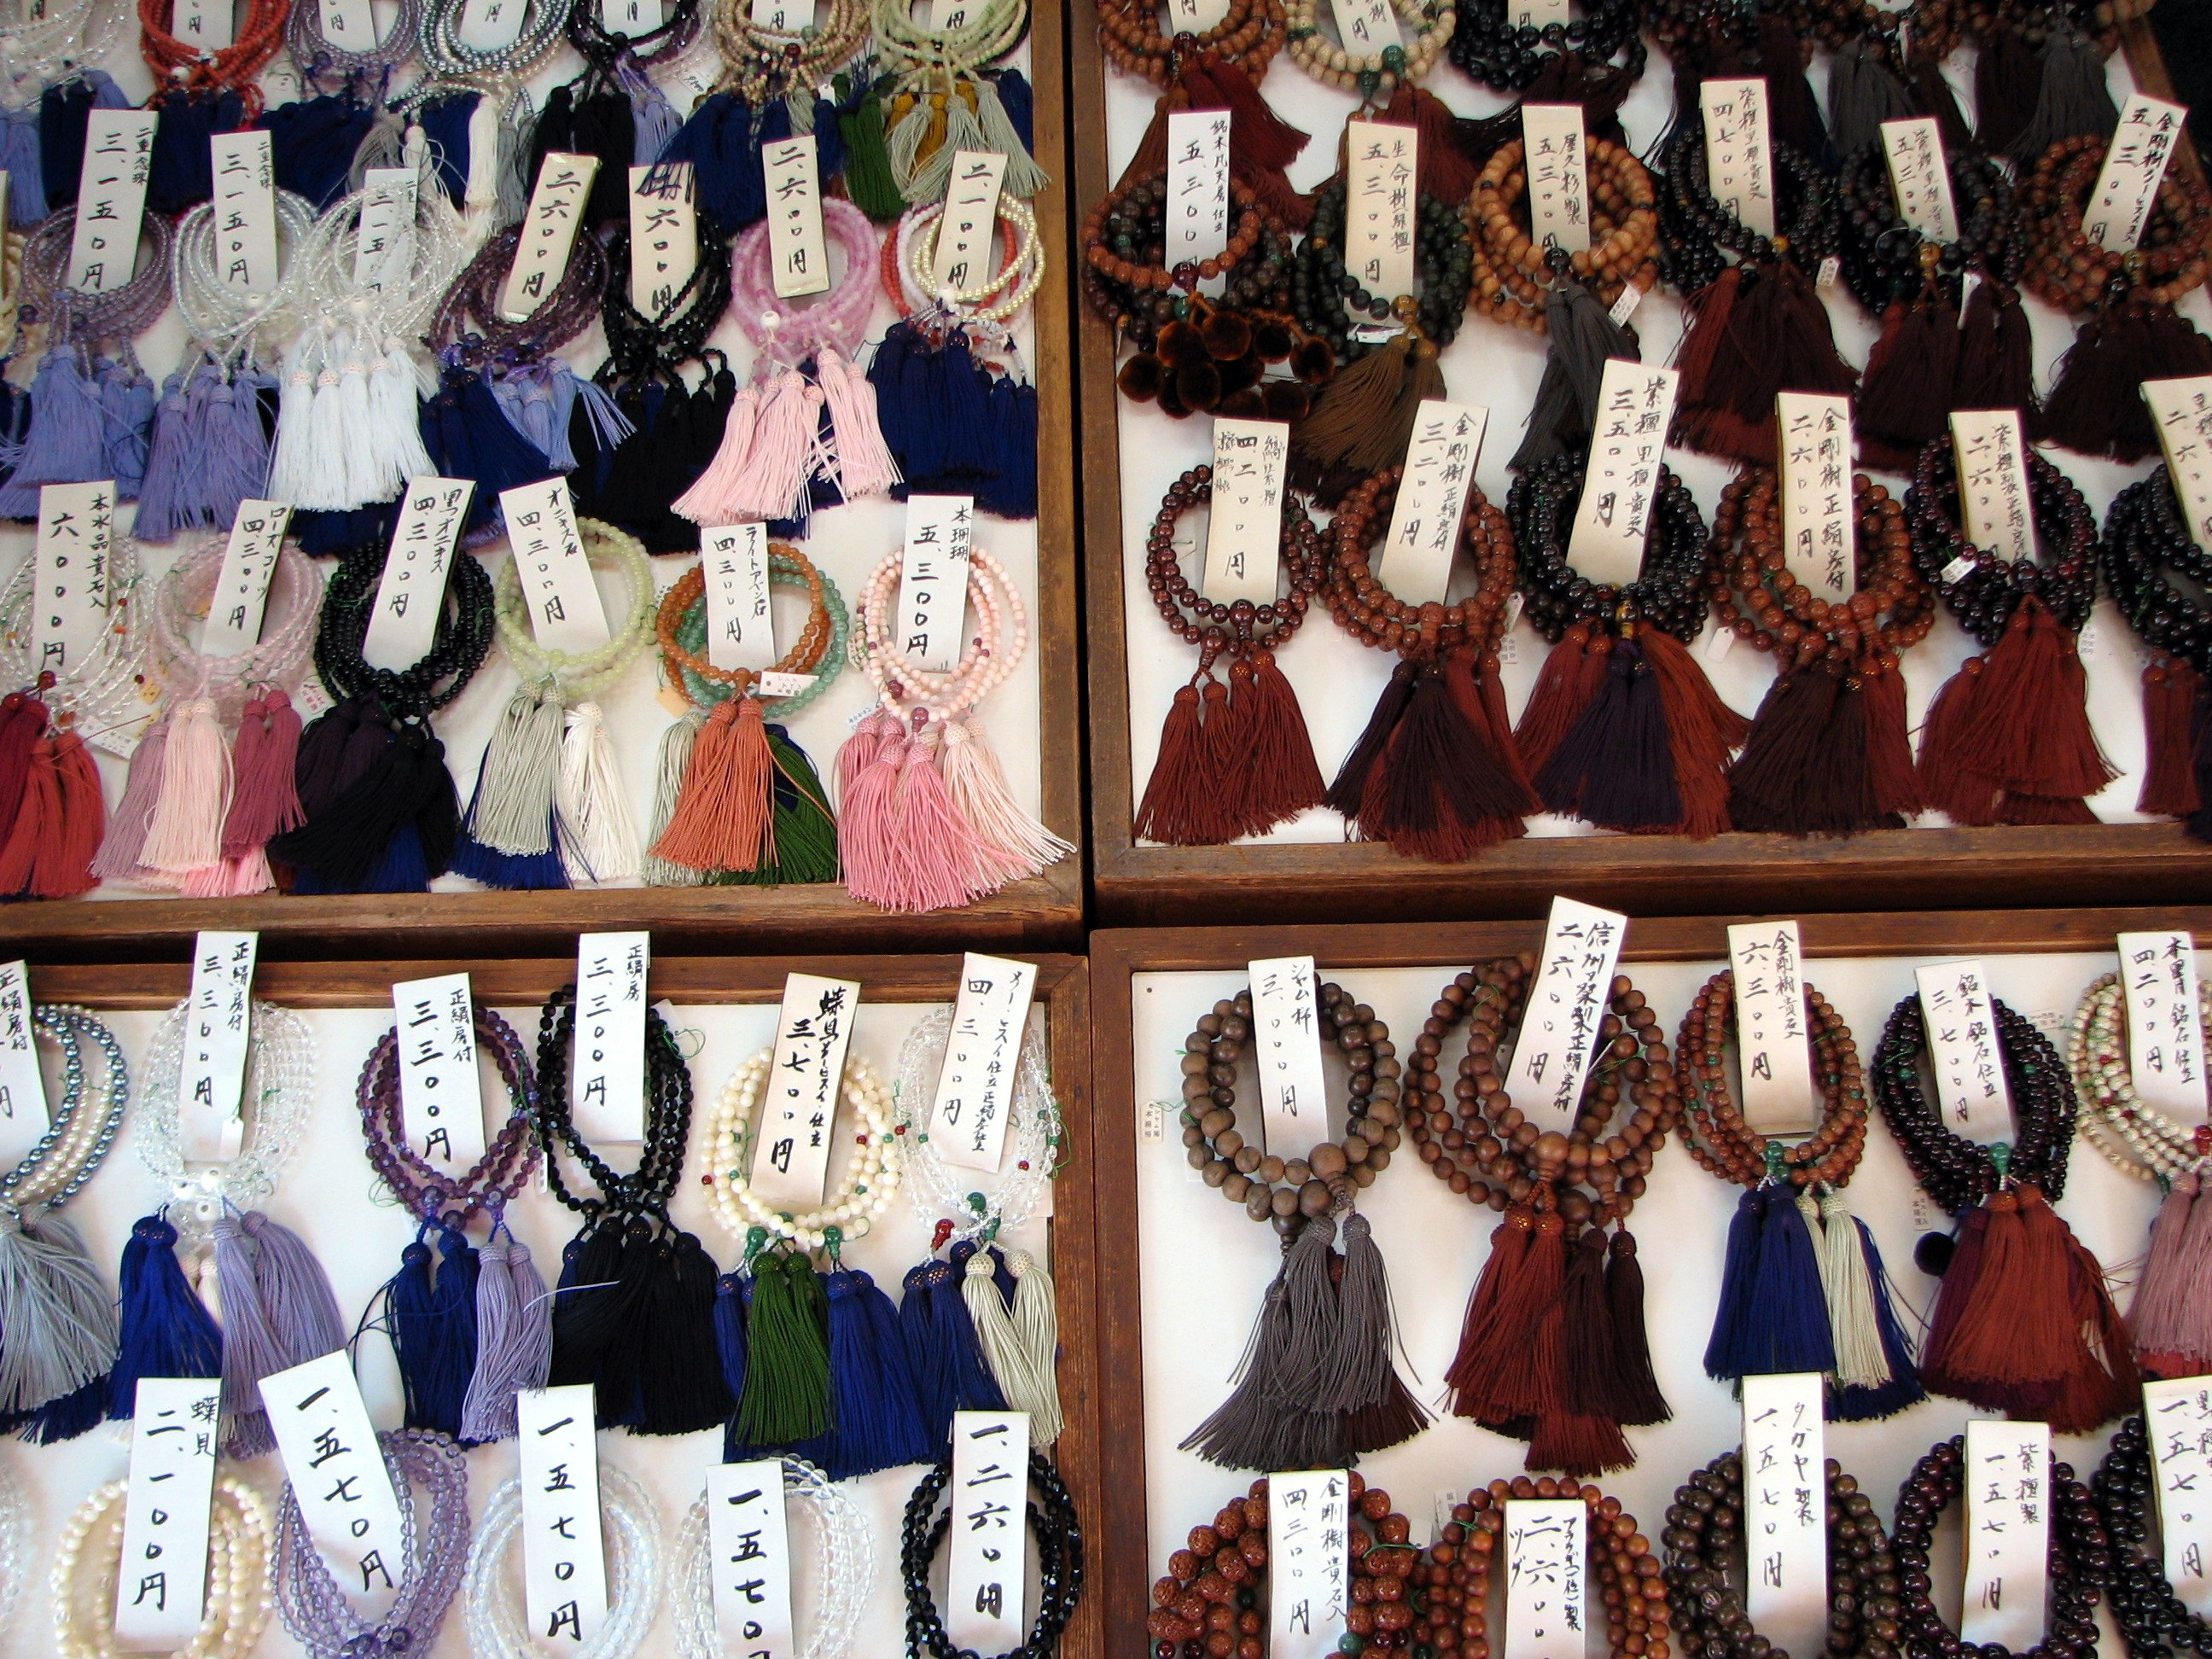 File:Buddhist prayer beads for sale.jpg - Wikimedia Commons